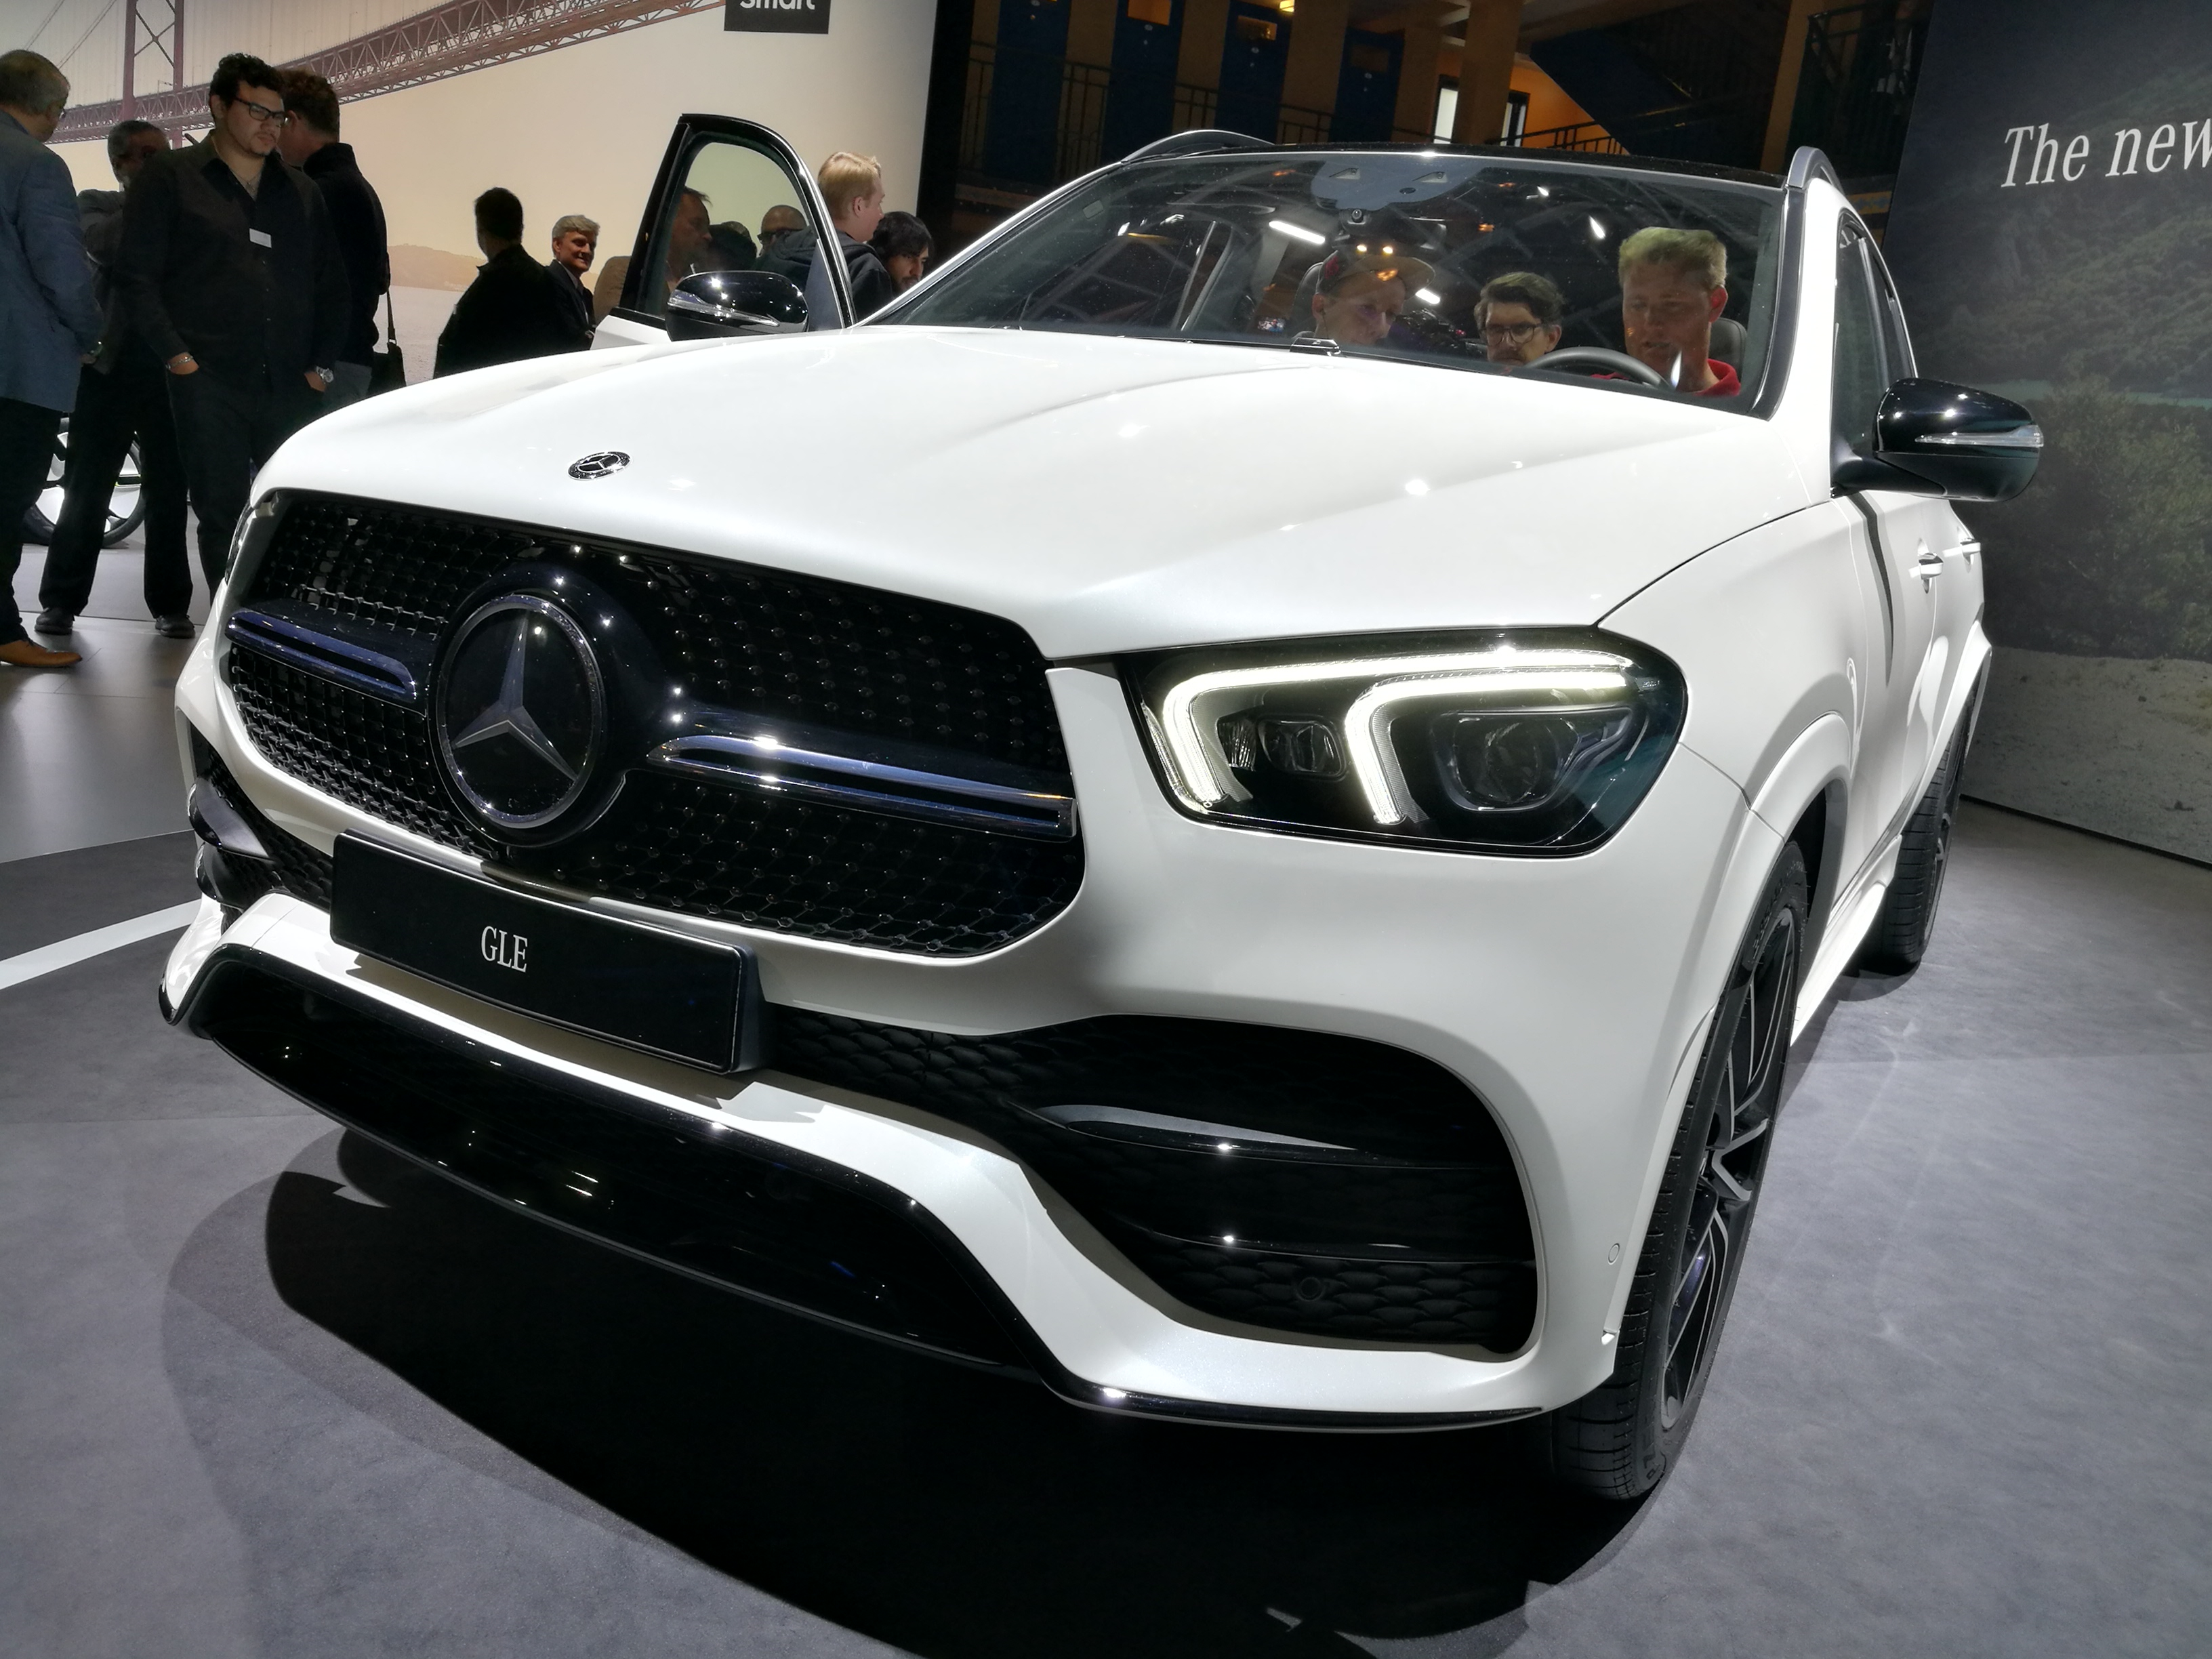 mercedes gle paris motor show 2018 w auto motor i sport. Black Bedroom Furniture Sets. Home Design Ideas